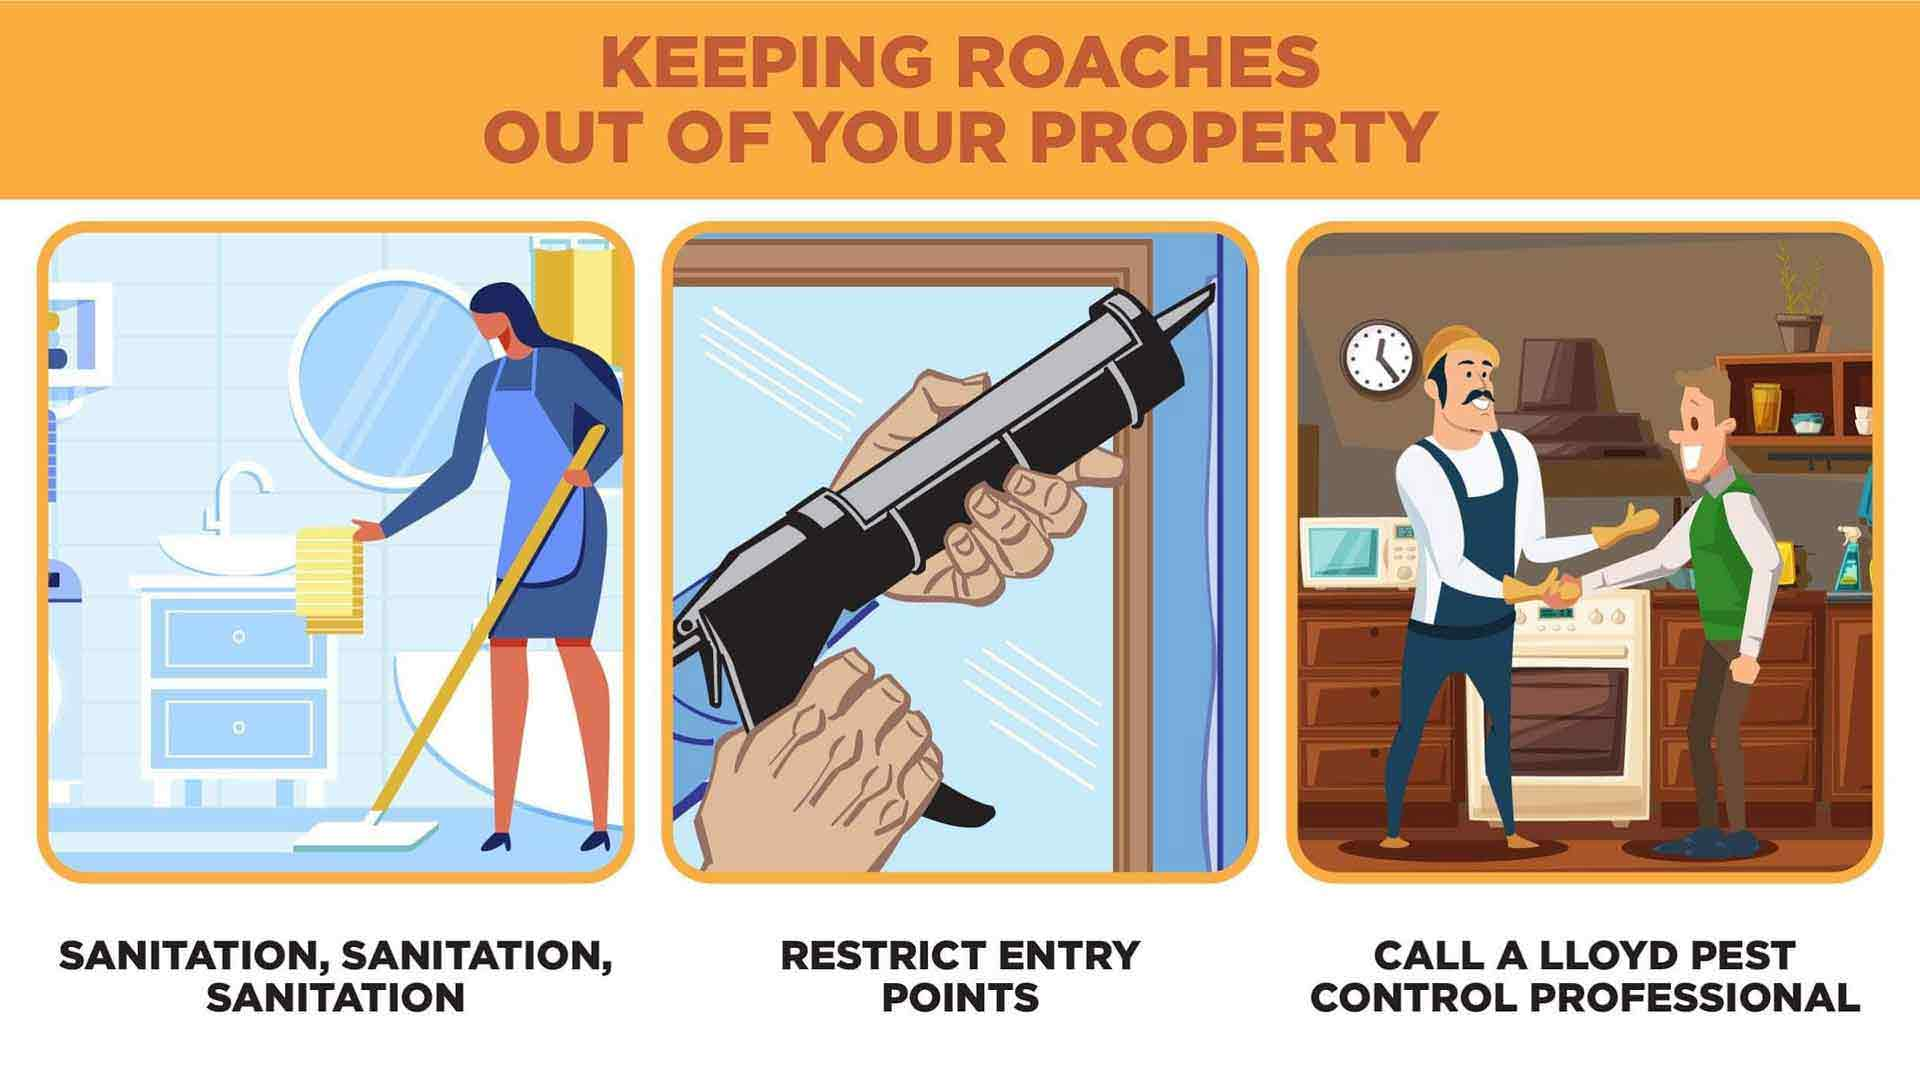 Three-part illustration featuring person cleaning their home, restricting German cockroach entry points, and calling a cockroach professional at Lloyd Pest.